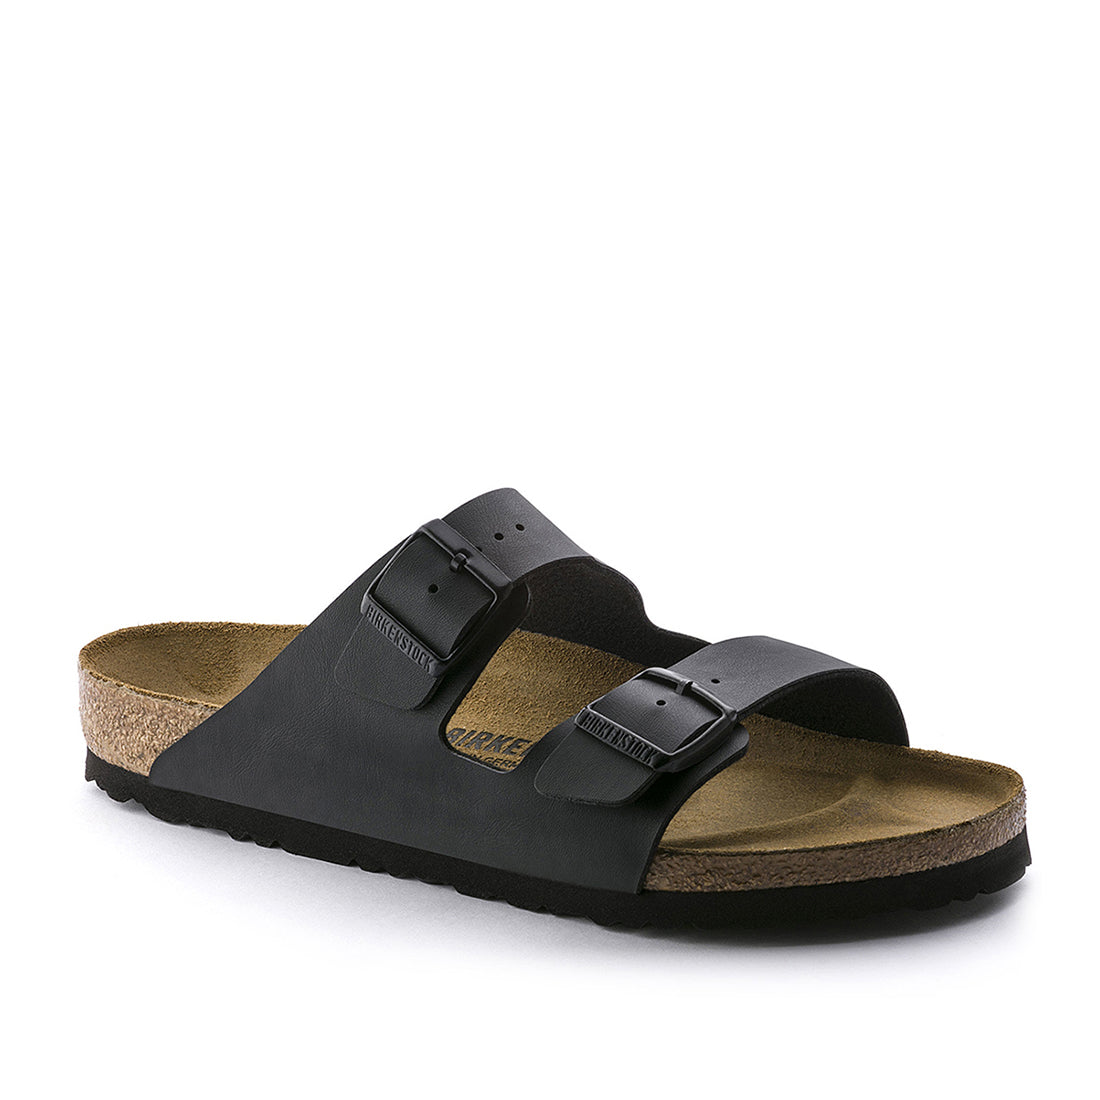 Arizona Leather Smooth (Narrow) - Black - 051193